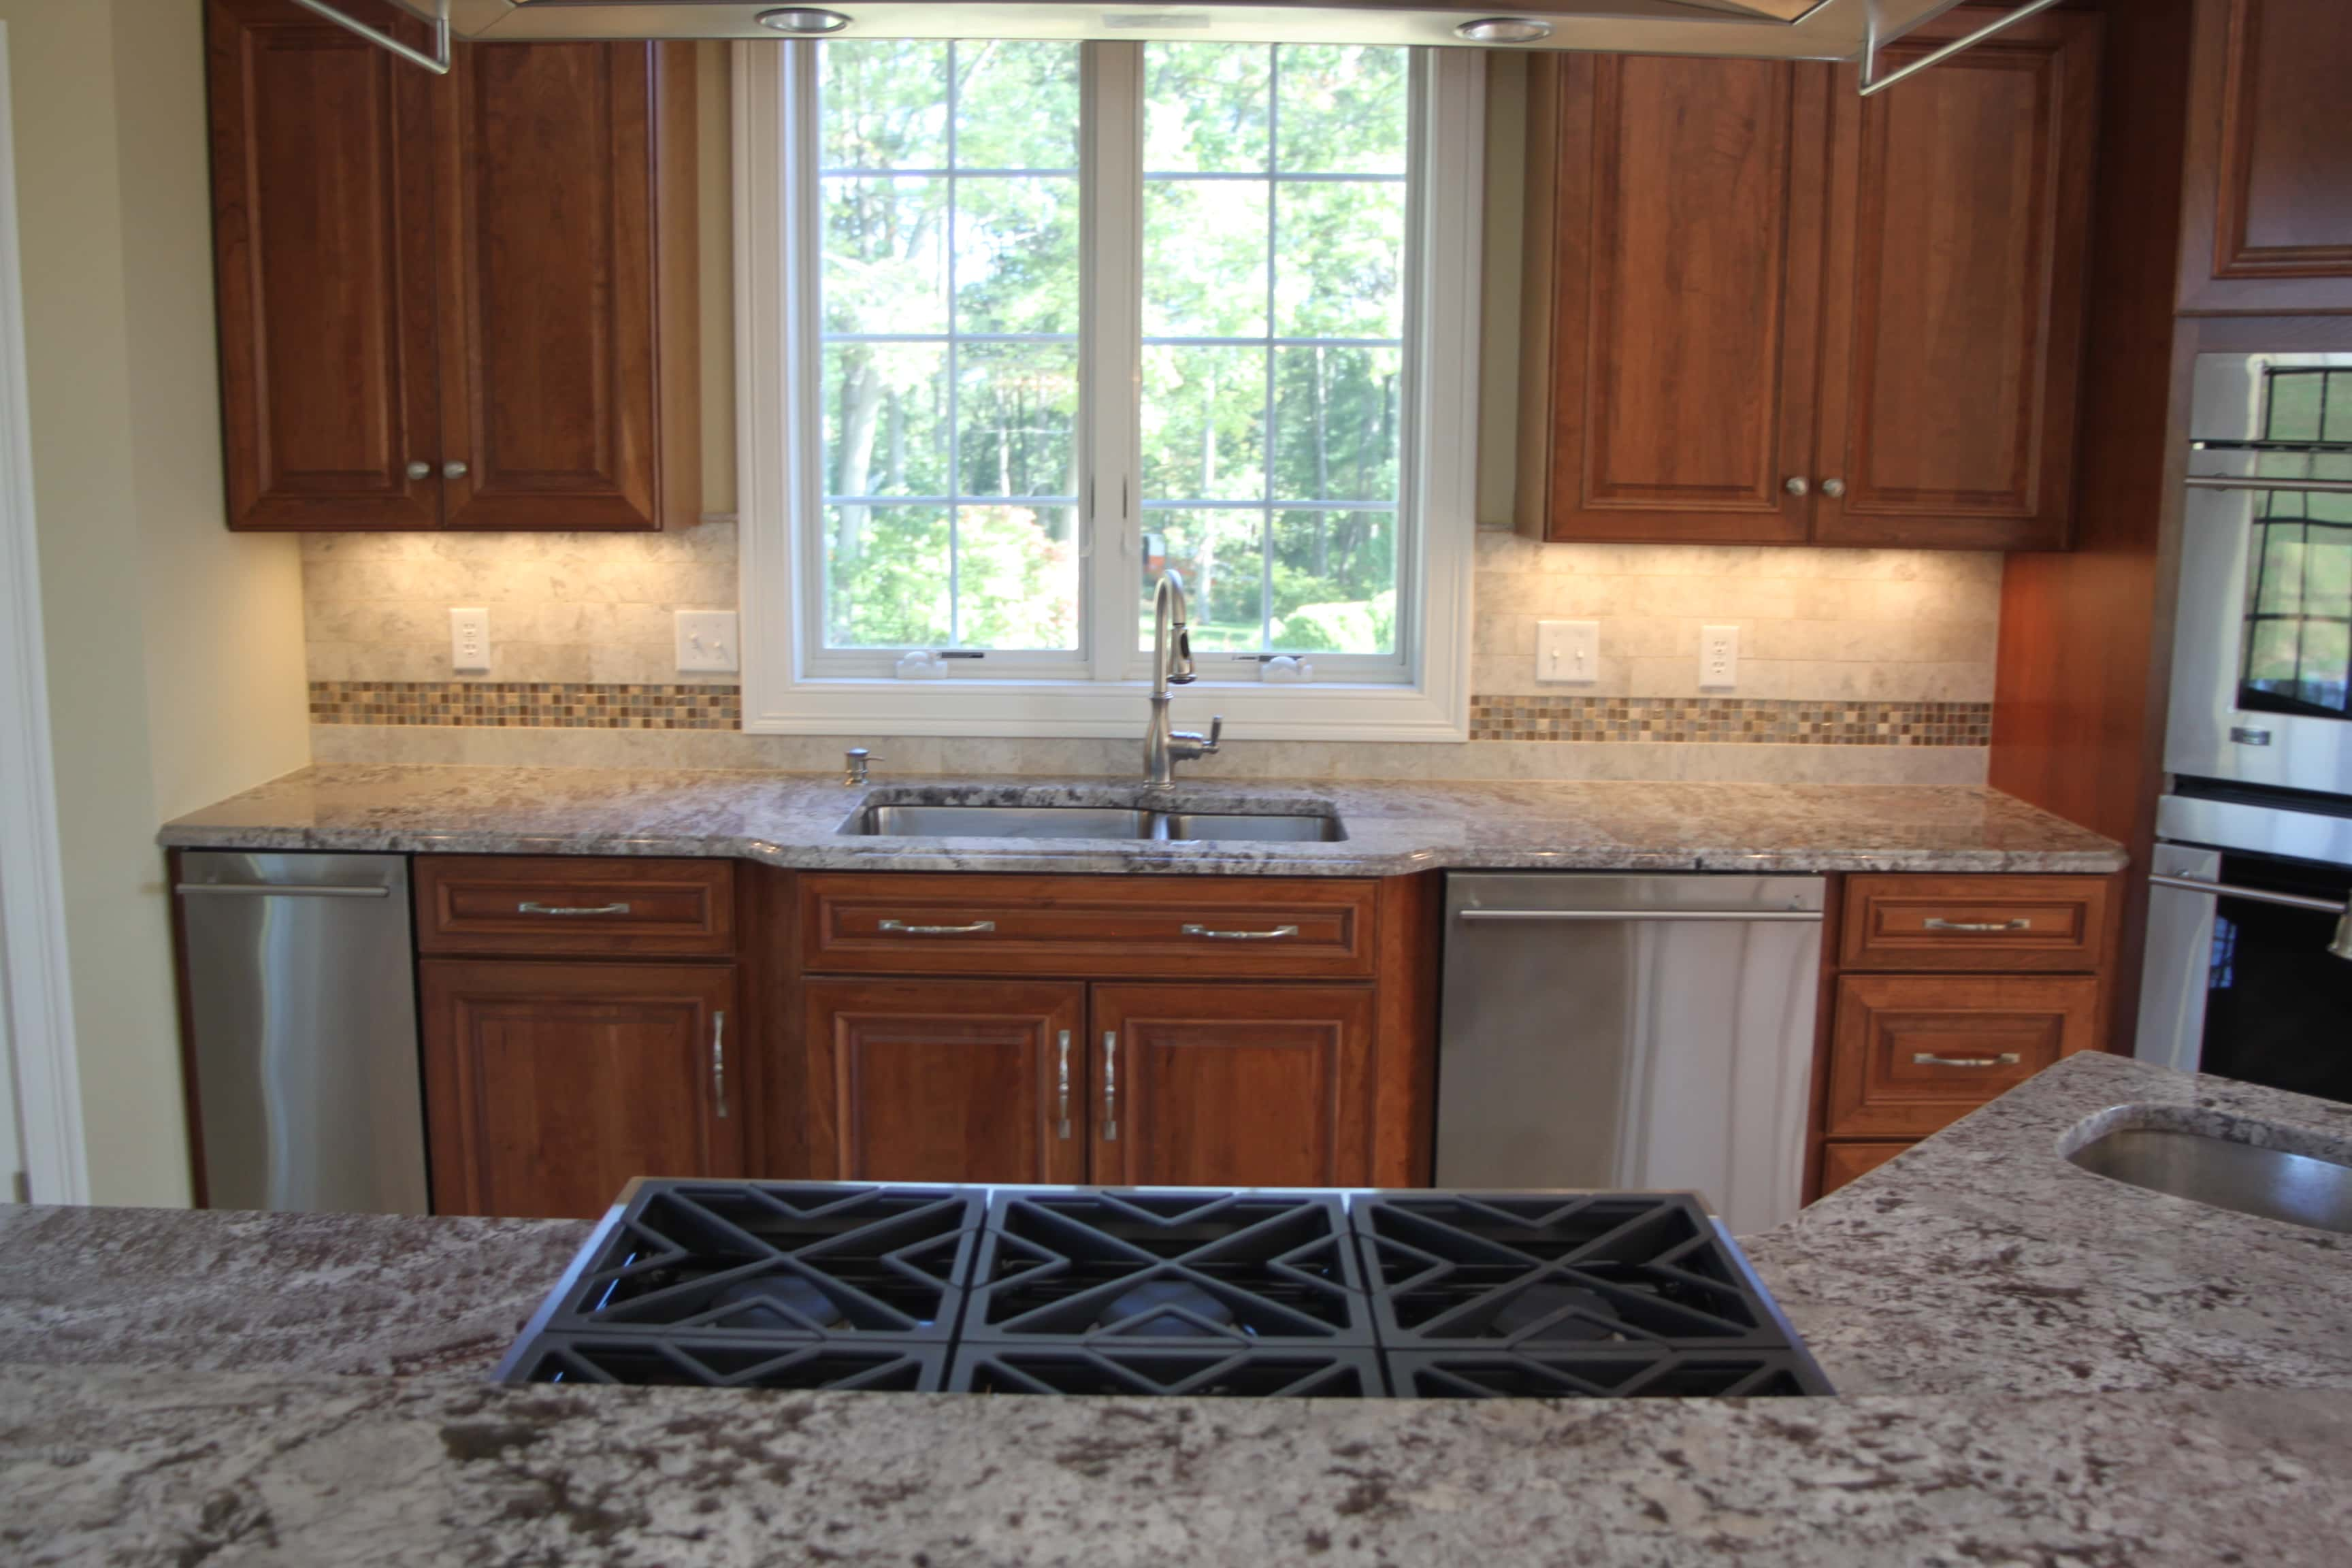 Should your Flooring Match Your Kitchen Cabinets or Countertops? & Should your Flooring Match Your Kitchen Cabinets or Countertops ...